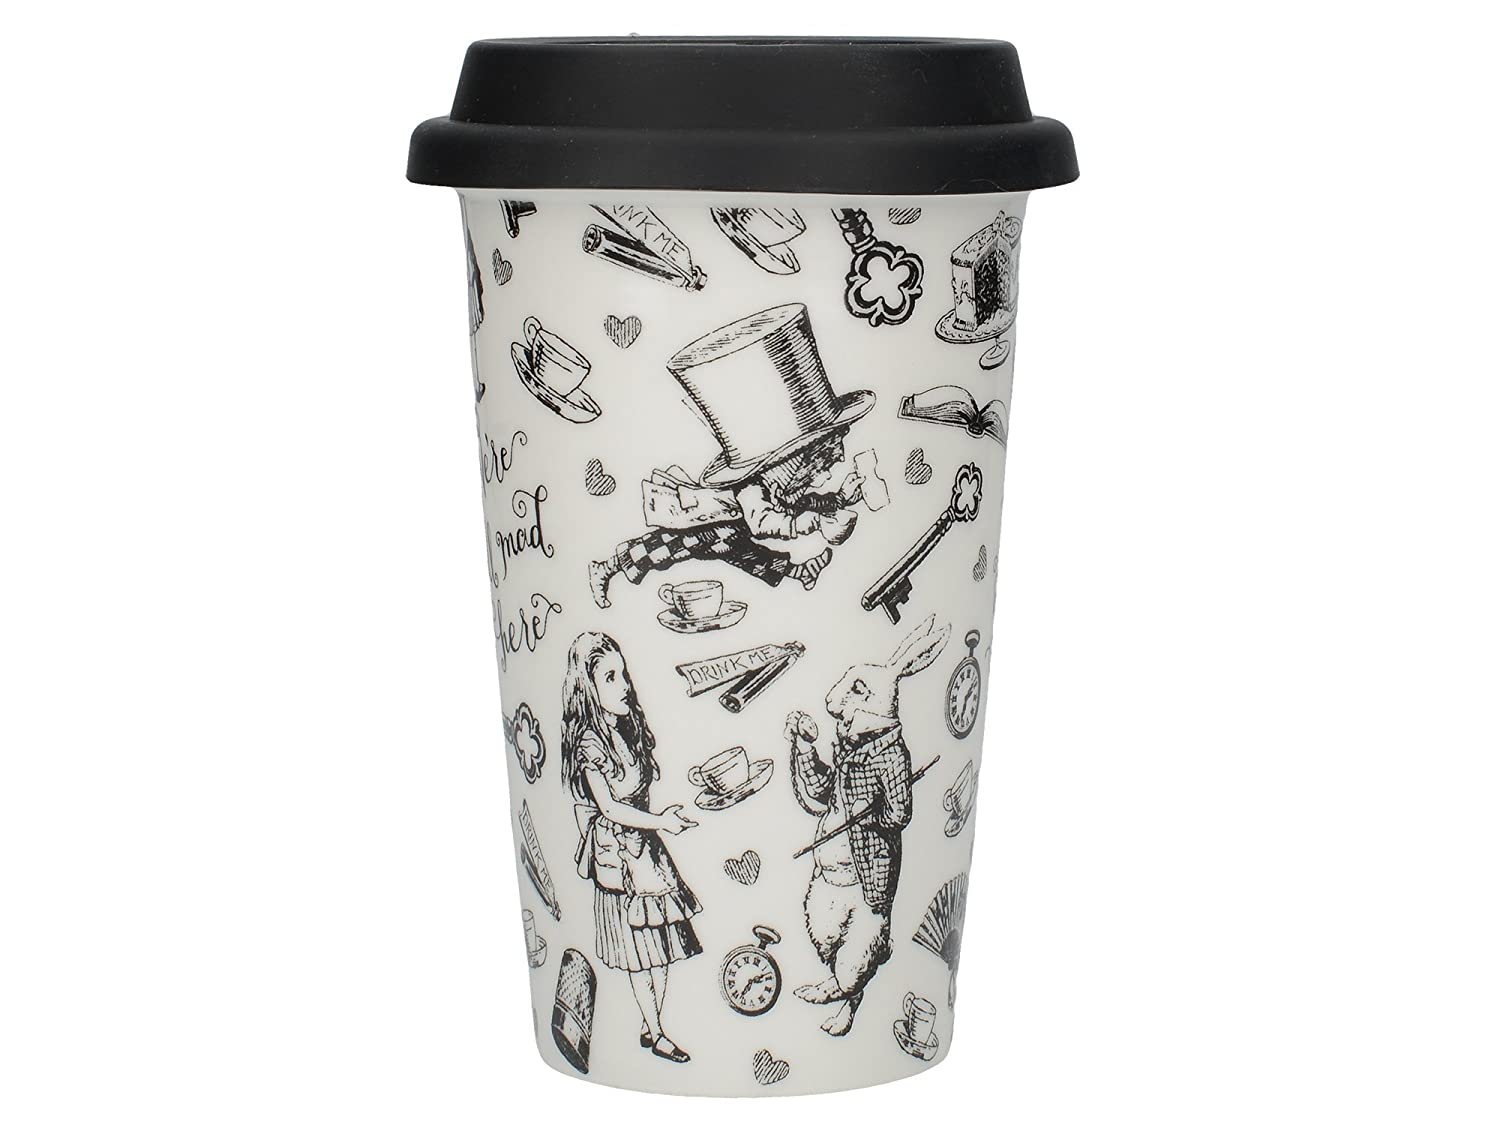 fe807f4deef Creative Tops Victoria and Albert 'Alice in Wonderland' Ceramic Travel Mug  - Black and White: Amazon.co.uk: Kitchen & Home